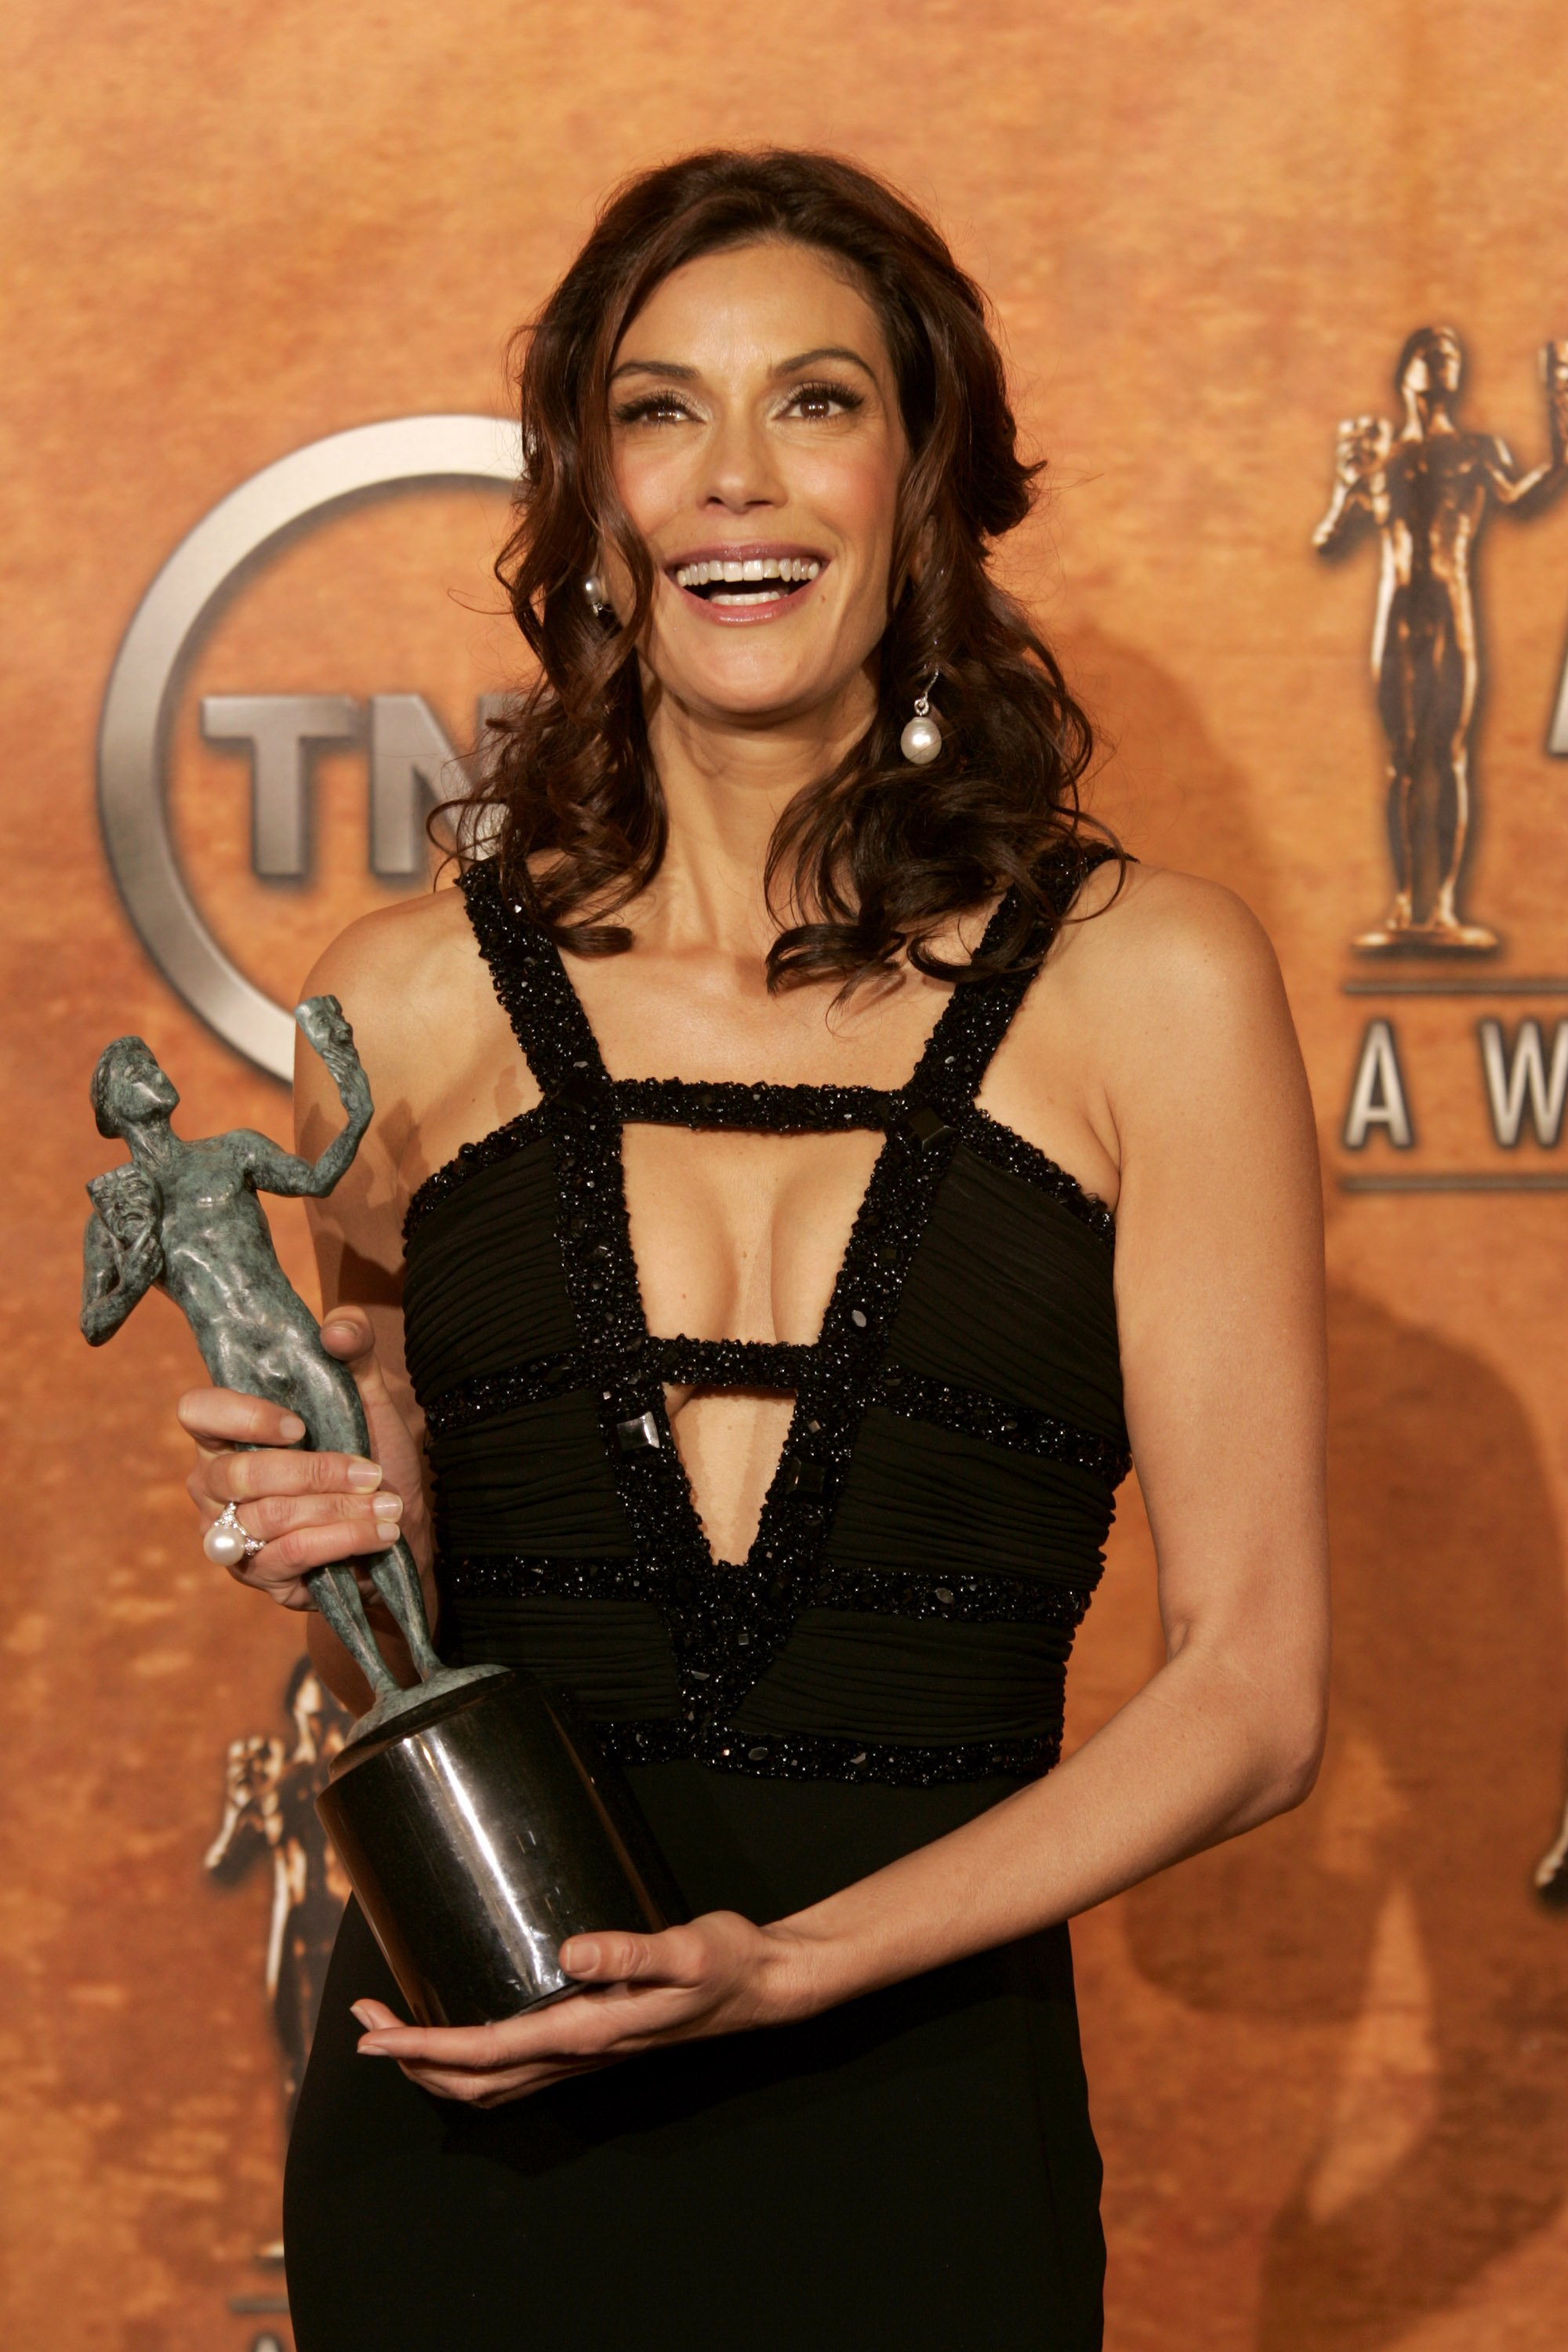 """Teri Hatcher poses with her SAG Award for Outstanding Female Actor in a Comedy Series for """"Desperate Housewives"""" at the 11th Annual SAG Awards in 2005 